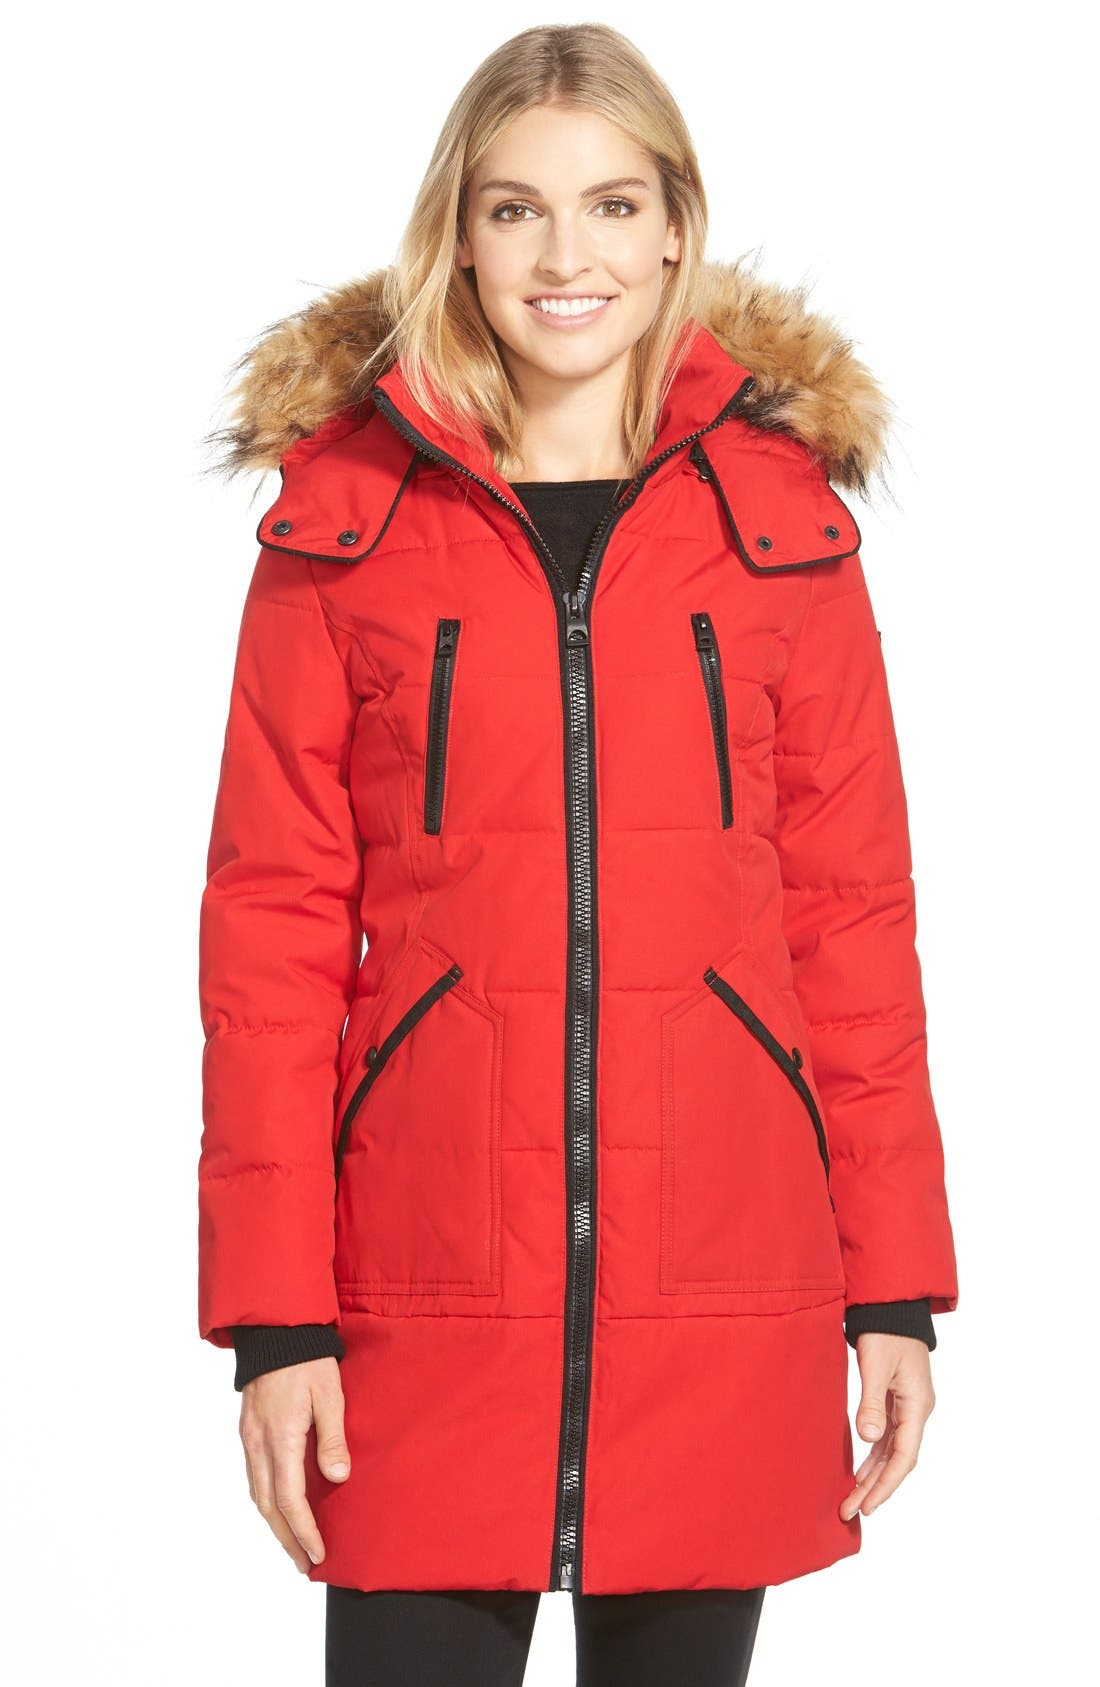 'Expedition' Quilted Parka with Faux Fur Trim,                             Main thumbnail 1, color,                             648